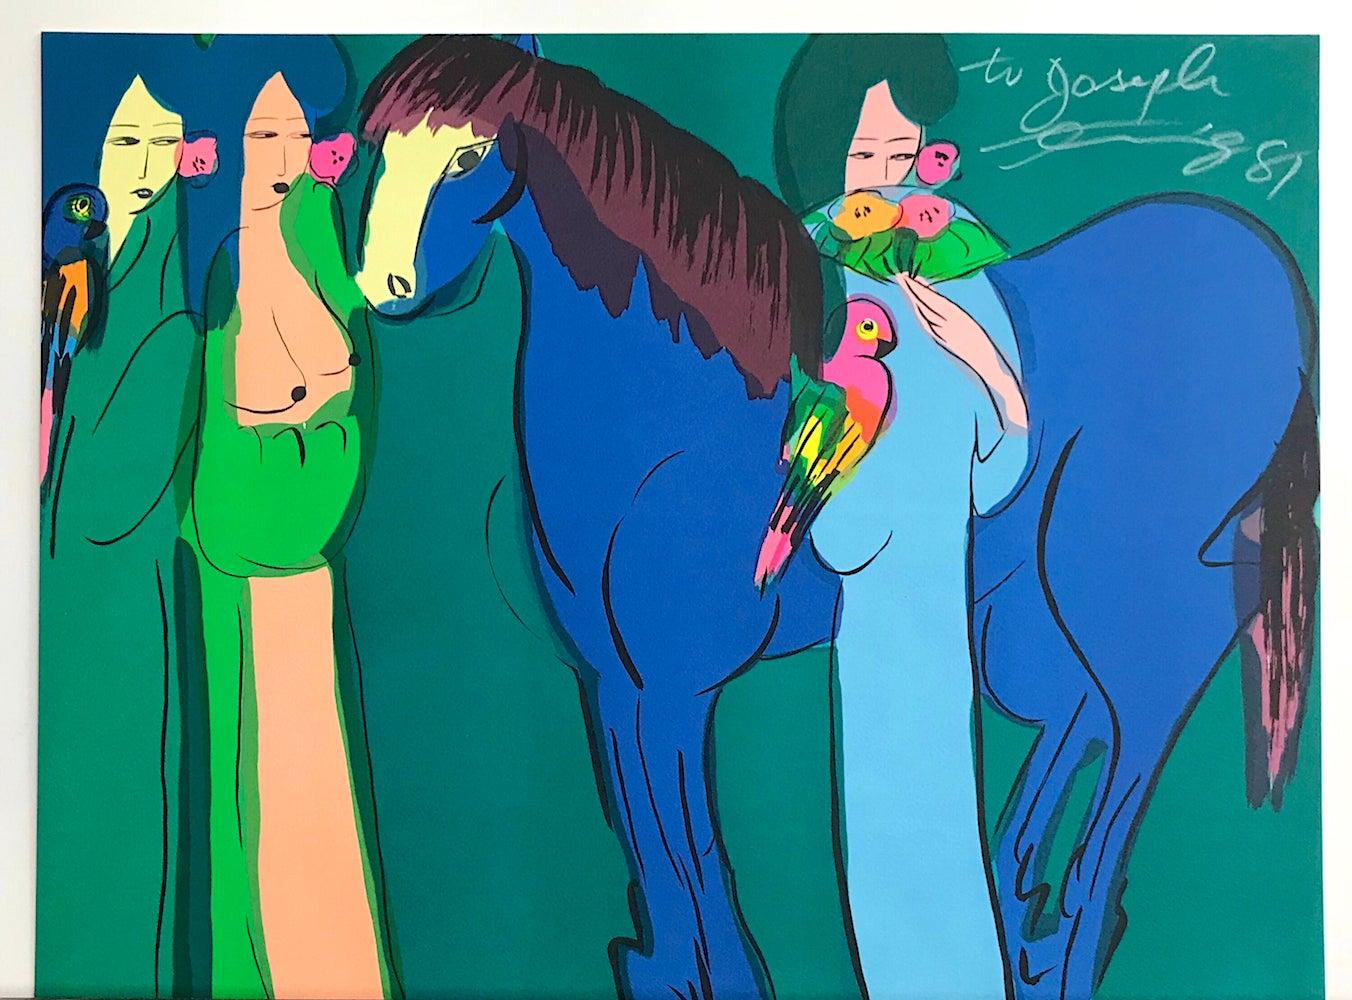 BLUE HORSE, THREE GEISHAS Signed Lithograph, Asian Women, Parrots, Teal Blue